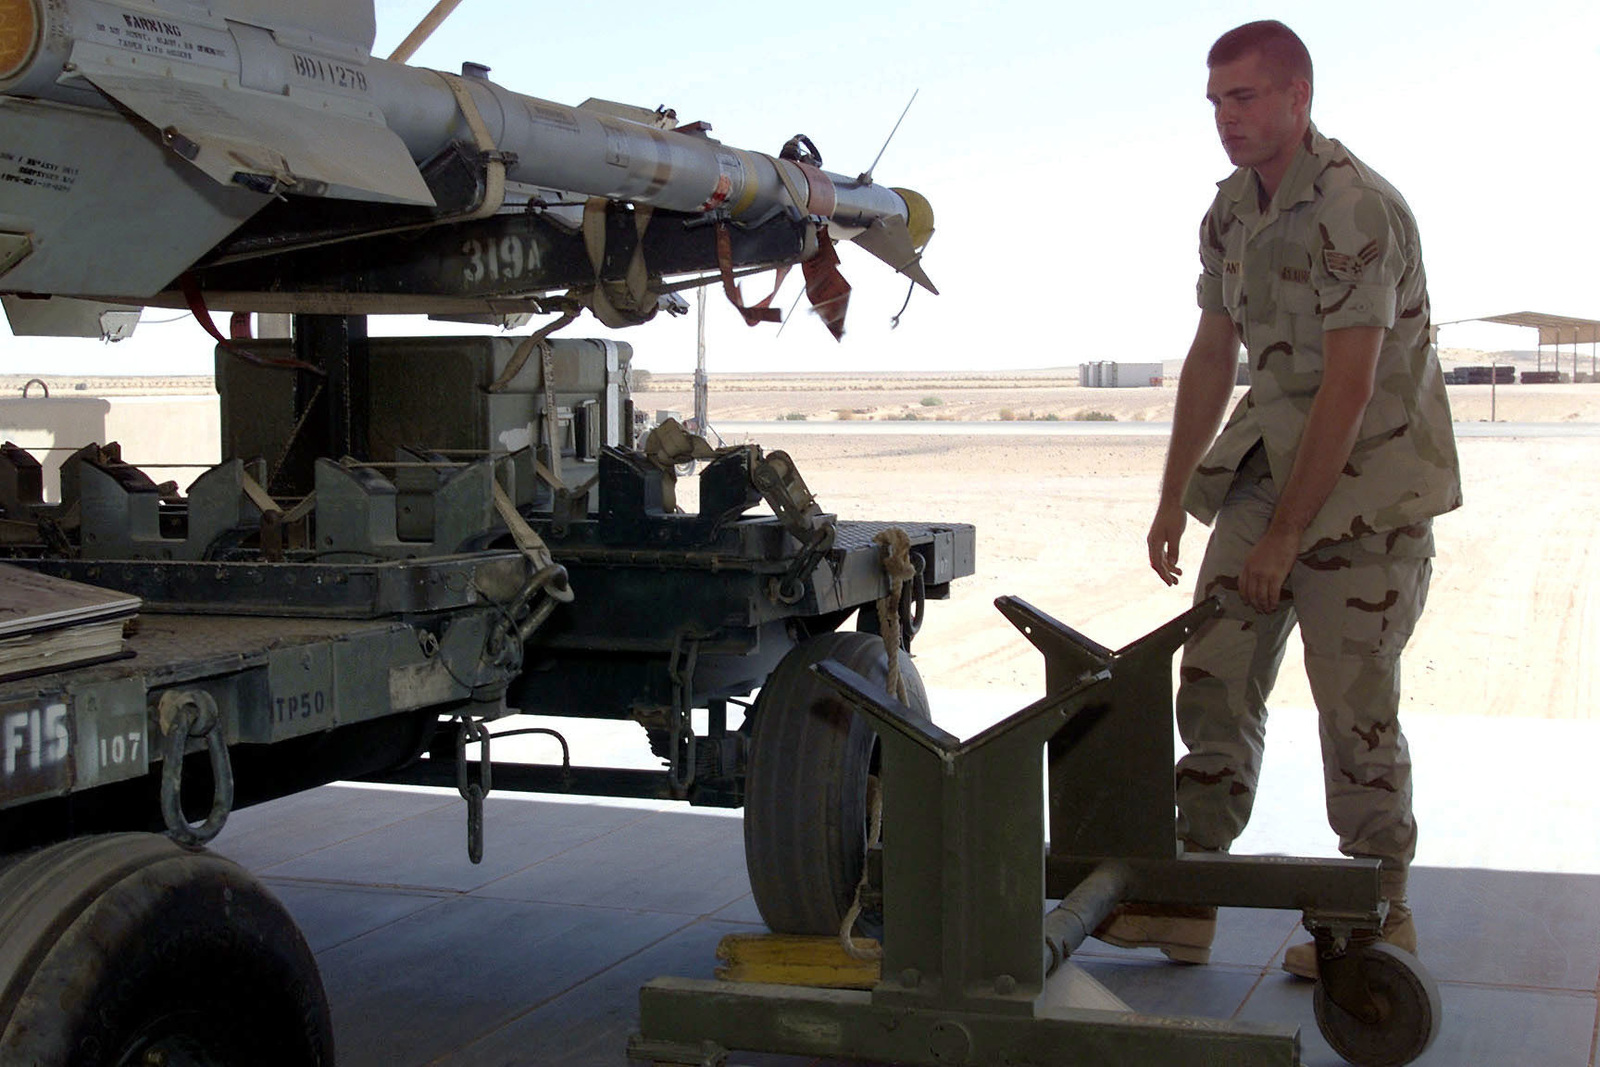 US Air Force SENIOR AIRMAN Daniel J. Bryant, 363rd Expeditionary Maintenance Squadron, Prince Sultan Air Base, Saudi Arabia, prepares to off-load munitons. SRA Bryant is part of the coalition force here to support Operation SOUTHERN WATCH, a military effort to enforce the no-fly and no-drive zone in Southern Iraq